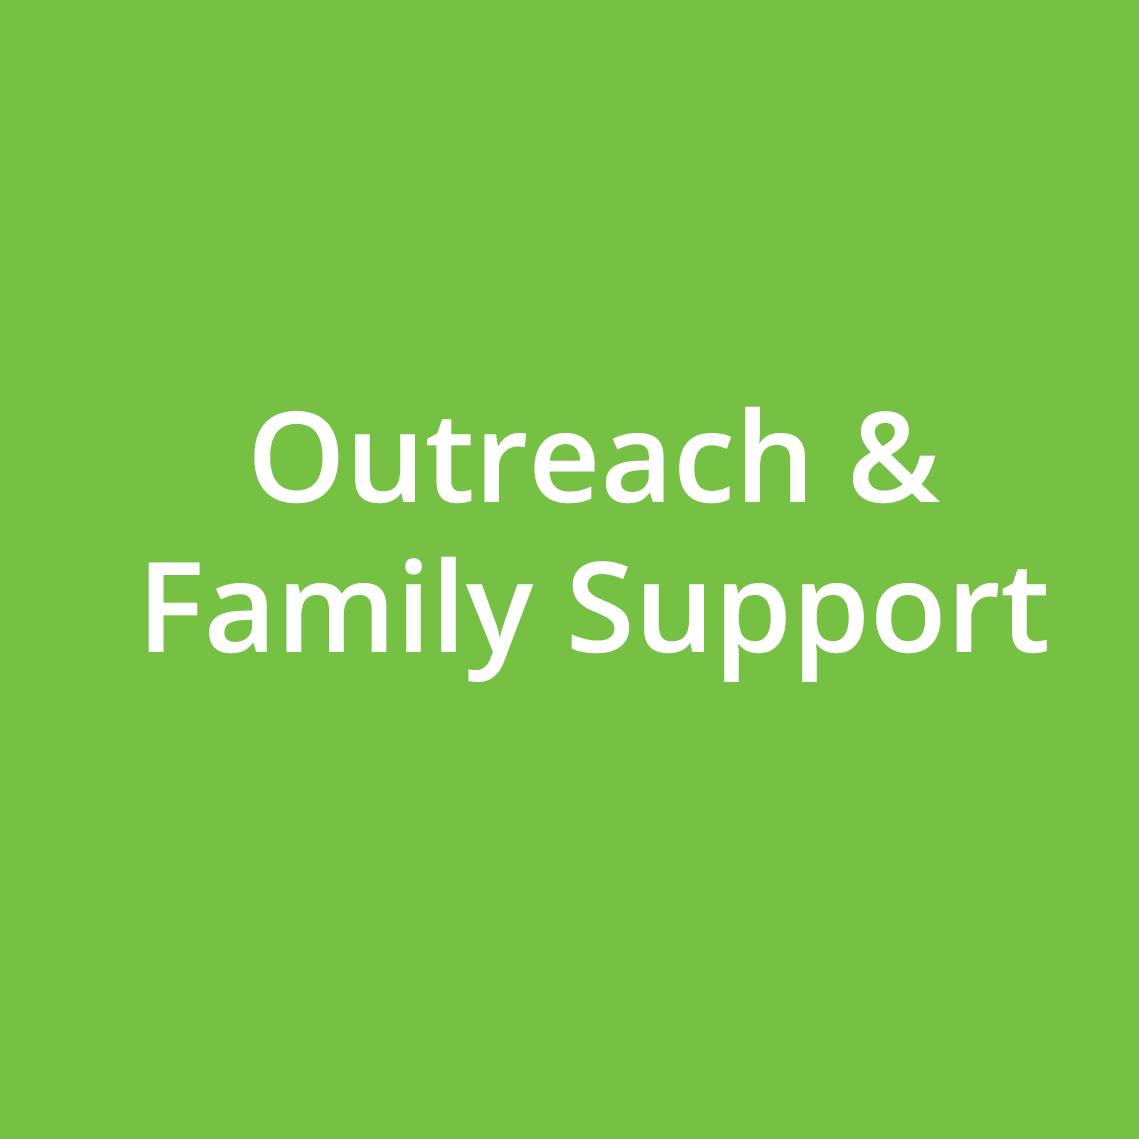 Outreach & Family Support.png